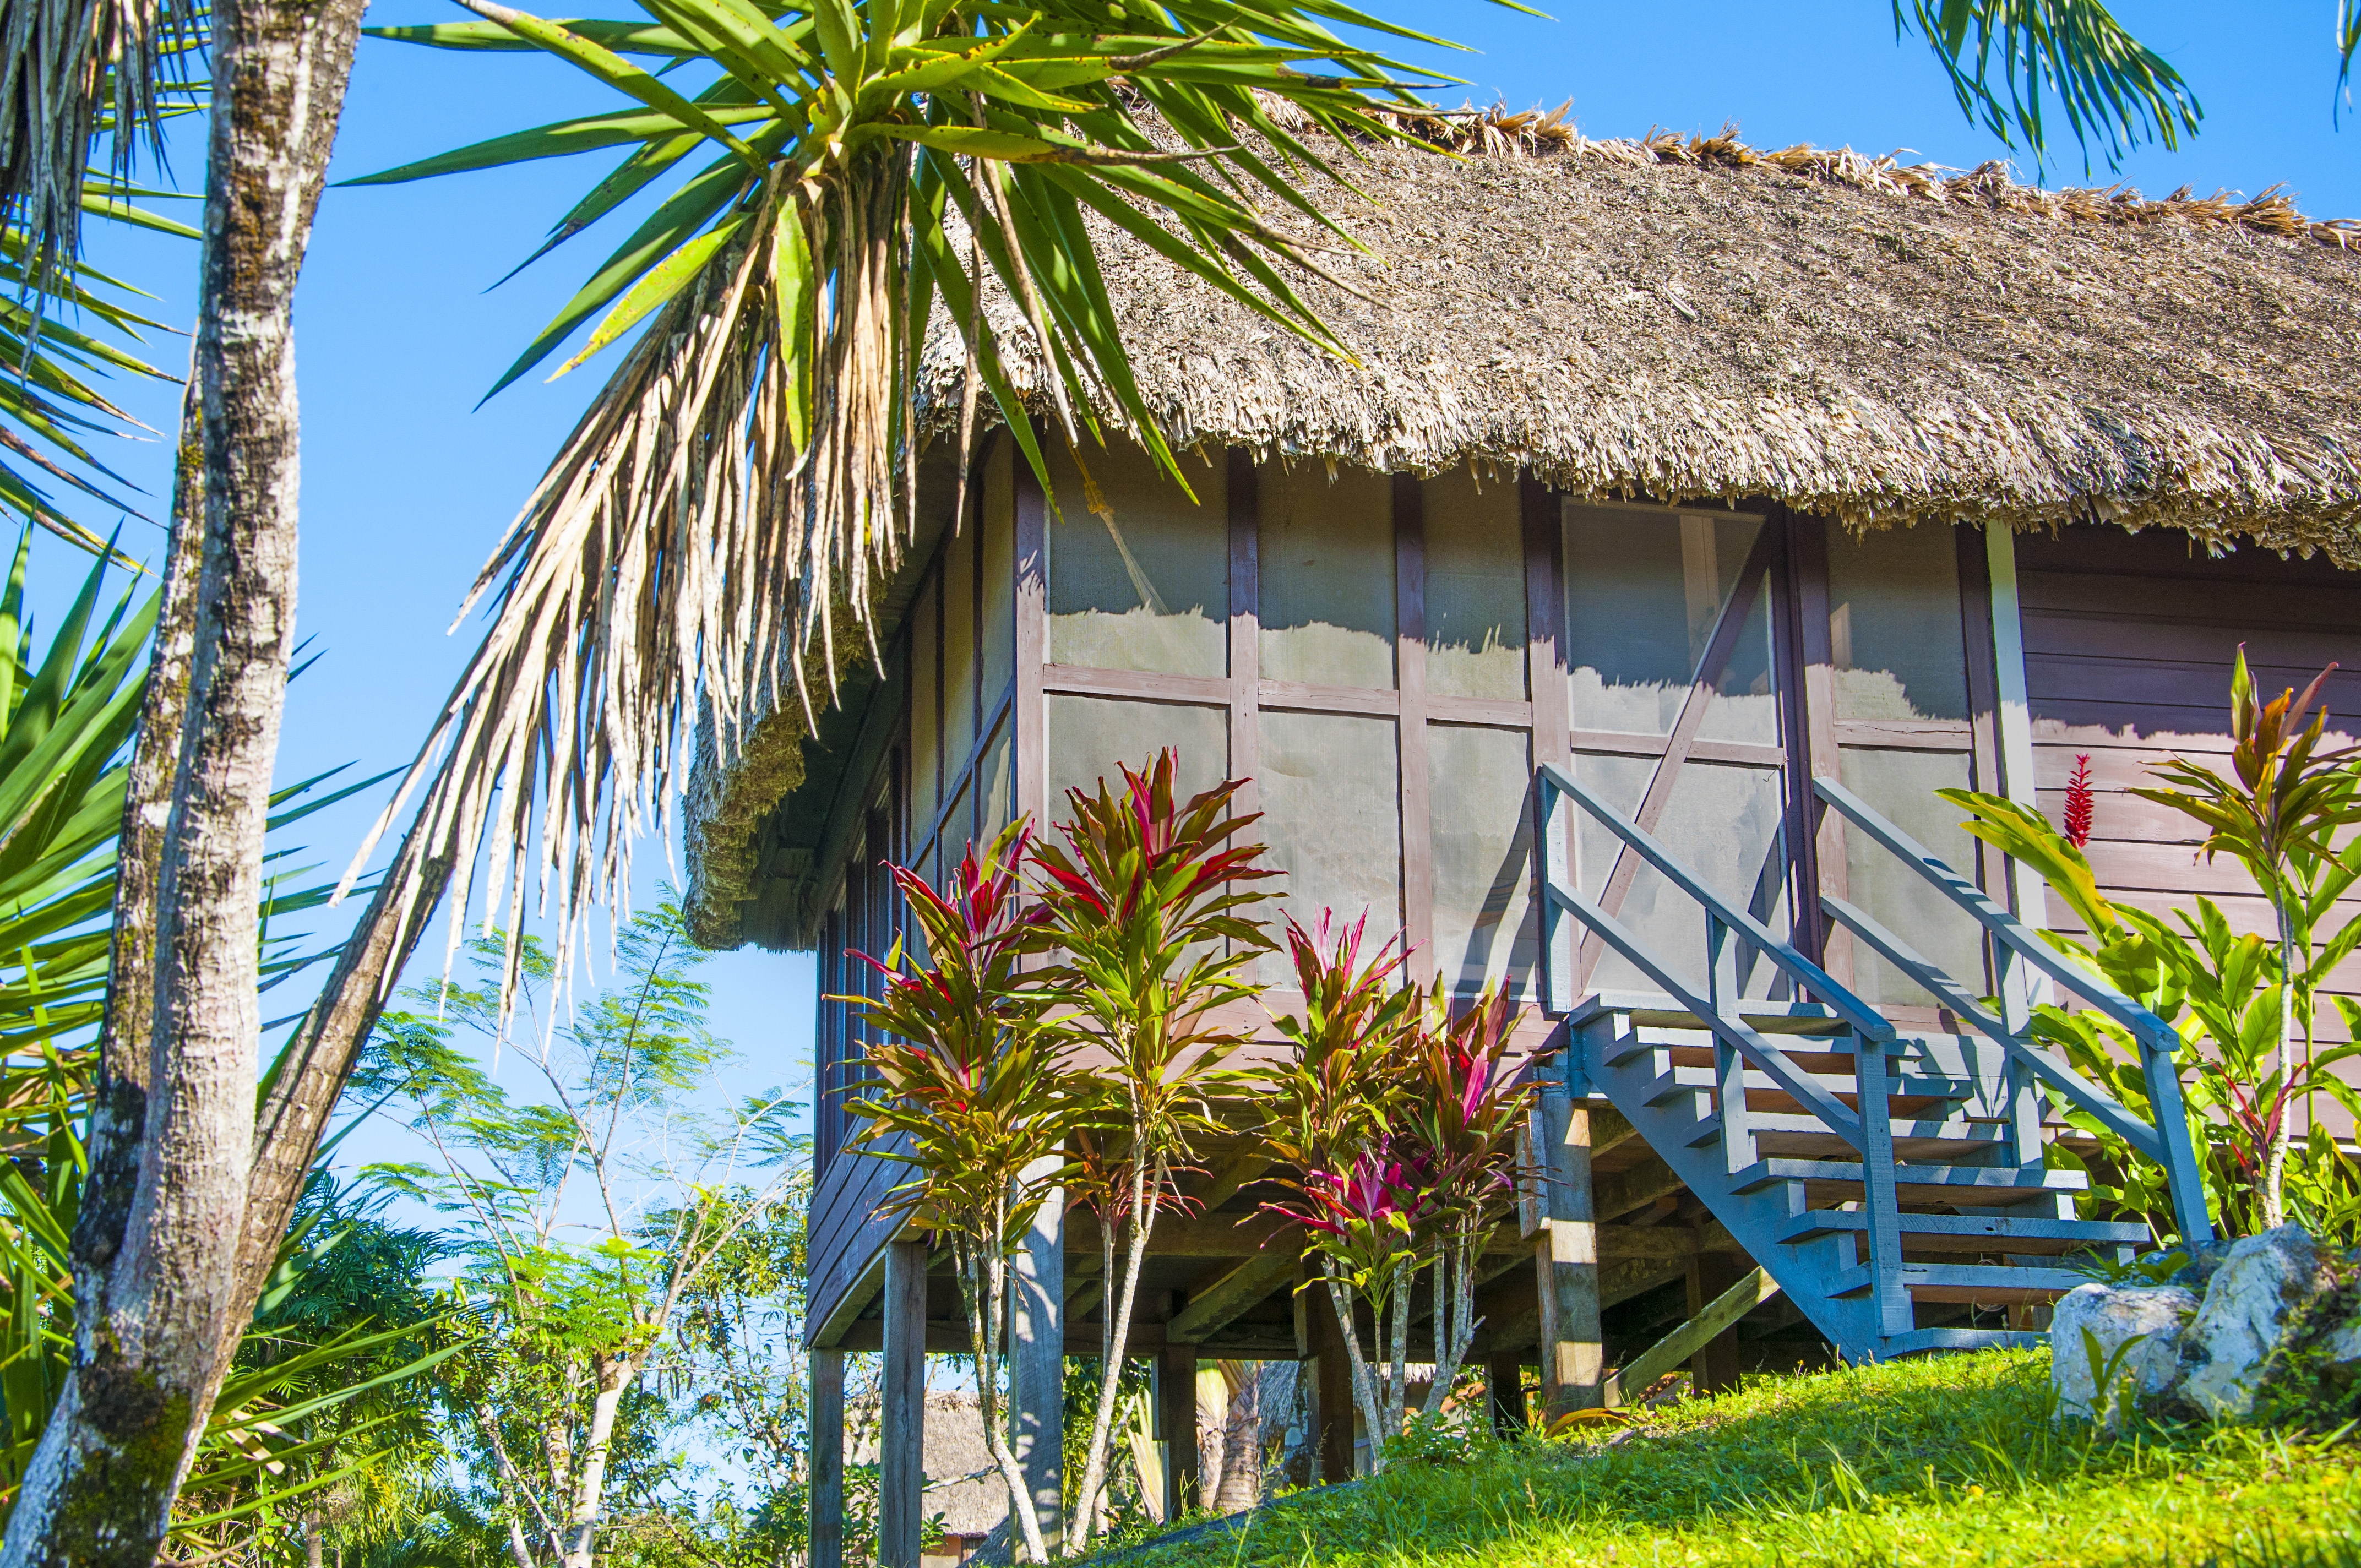 Why visit Belize in August 2021? Here are 10 Good Reasons